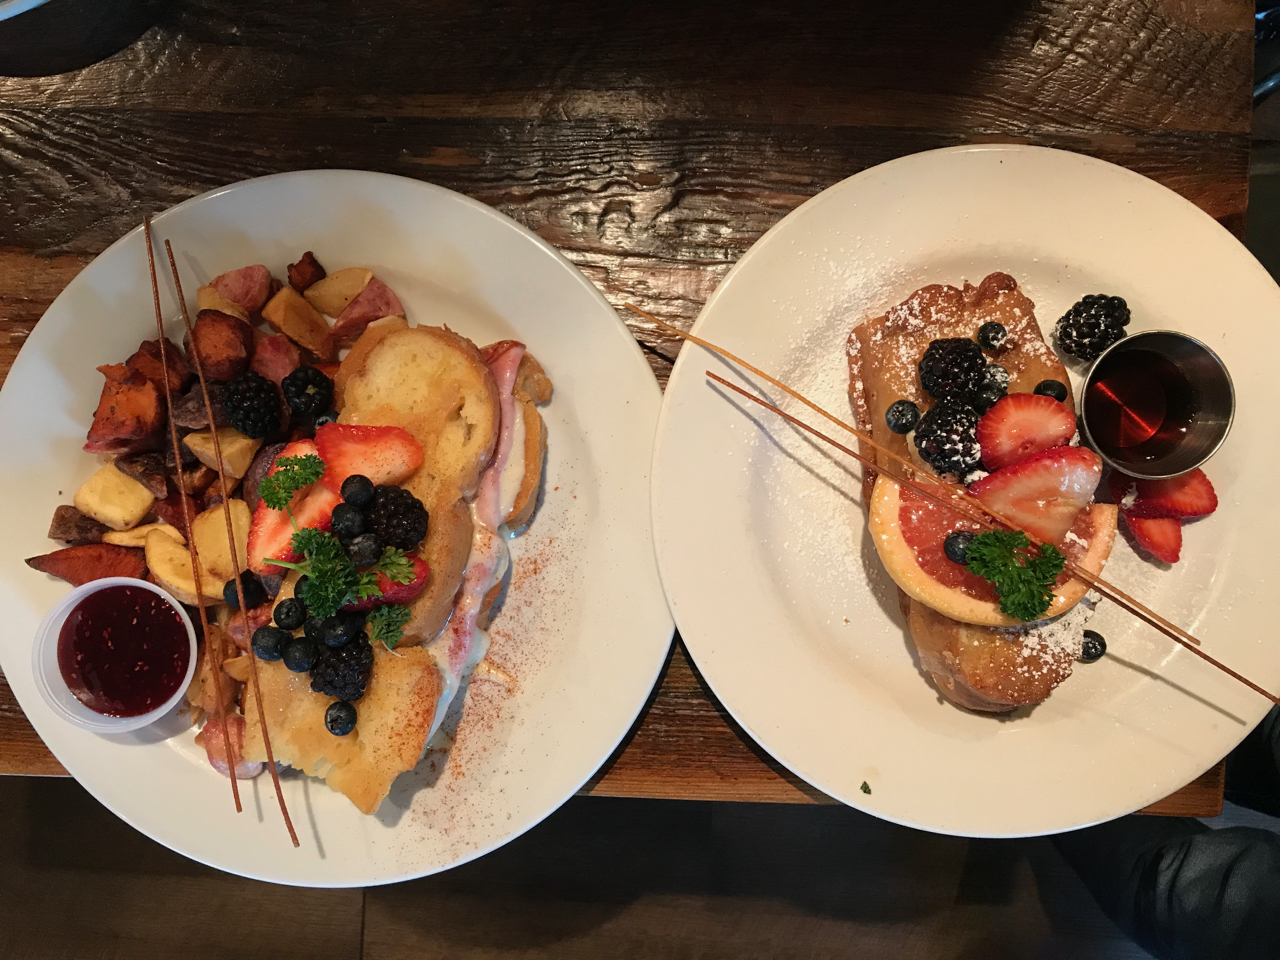 A photo of two plates on the table at Kitchen Story in San Francisco, California. The plate on the left features the KS Monte Cristo and the plate on the right has the Marscarpone Stuffed Deep Fried French Toast.